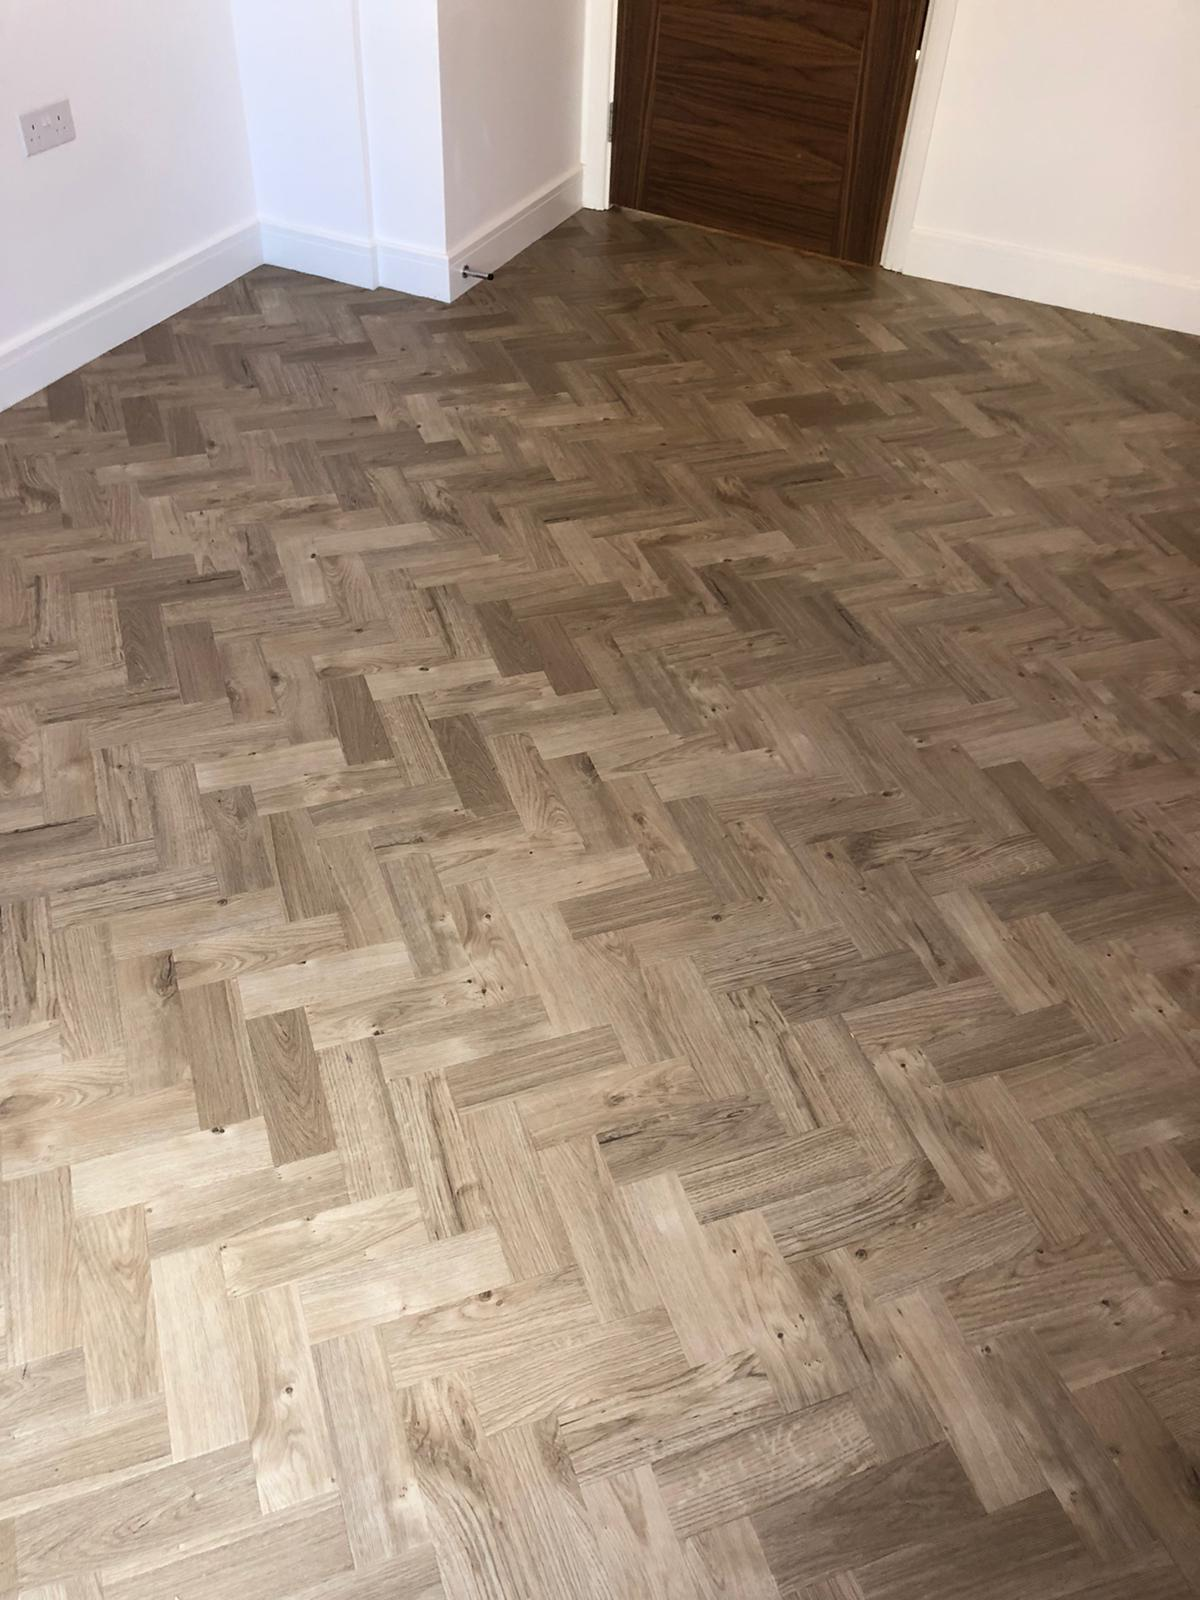 To supply & install Amtico Spacia Sun Bleached Oak luxury vinyl flooring in Kilburn 3